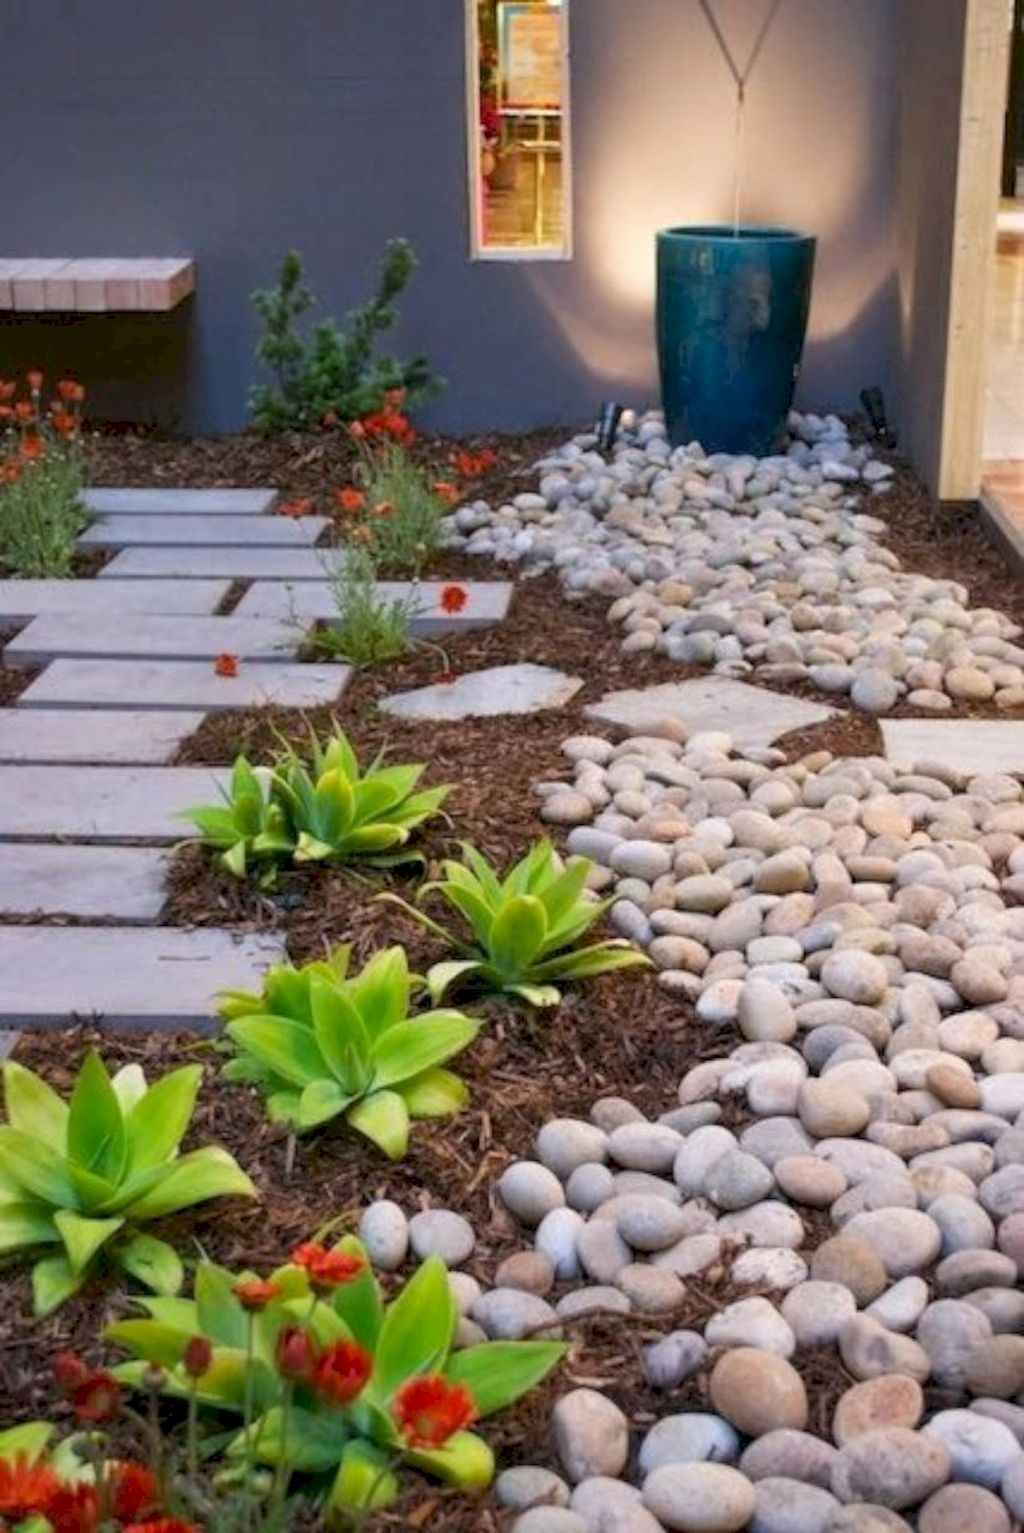 Cool 65 Awesome Front Yard Rock Garden Landscaping Ideas Source Link Https Decortutor Landscaping With Rocks Rock Garden Landscaping River Rock Landscaping